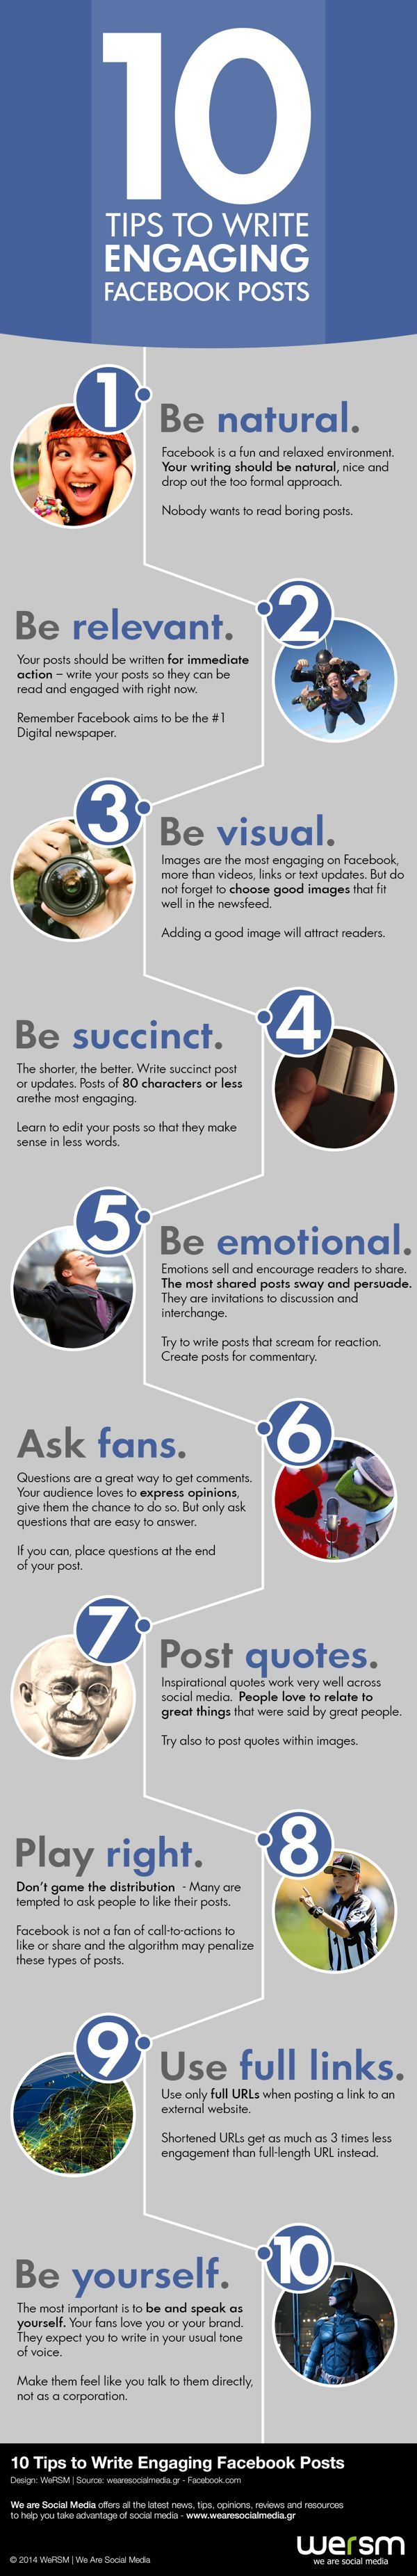 Make the most of Facebook #Facebook http://wearesocialmedia.gr/10-tips-to-write-engaging-facebook-posts/